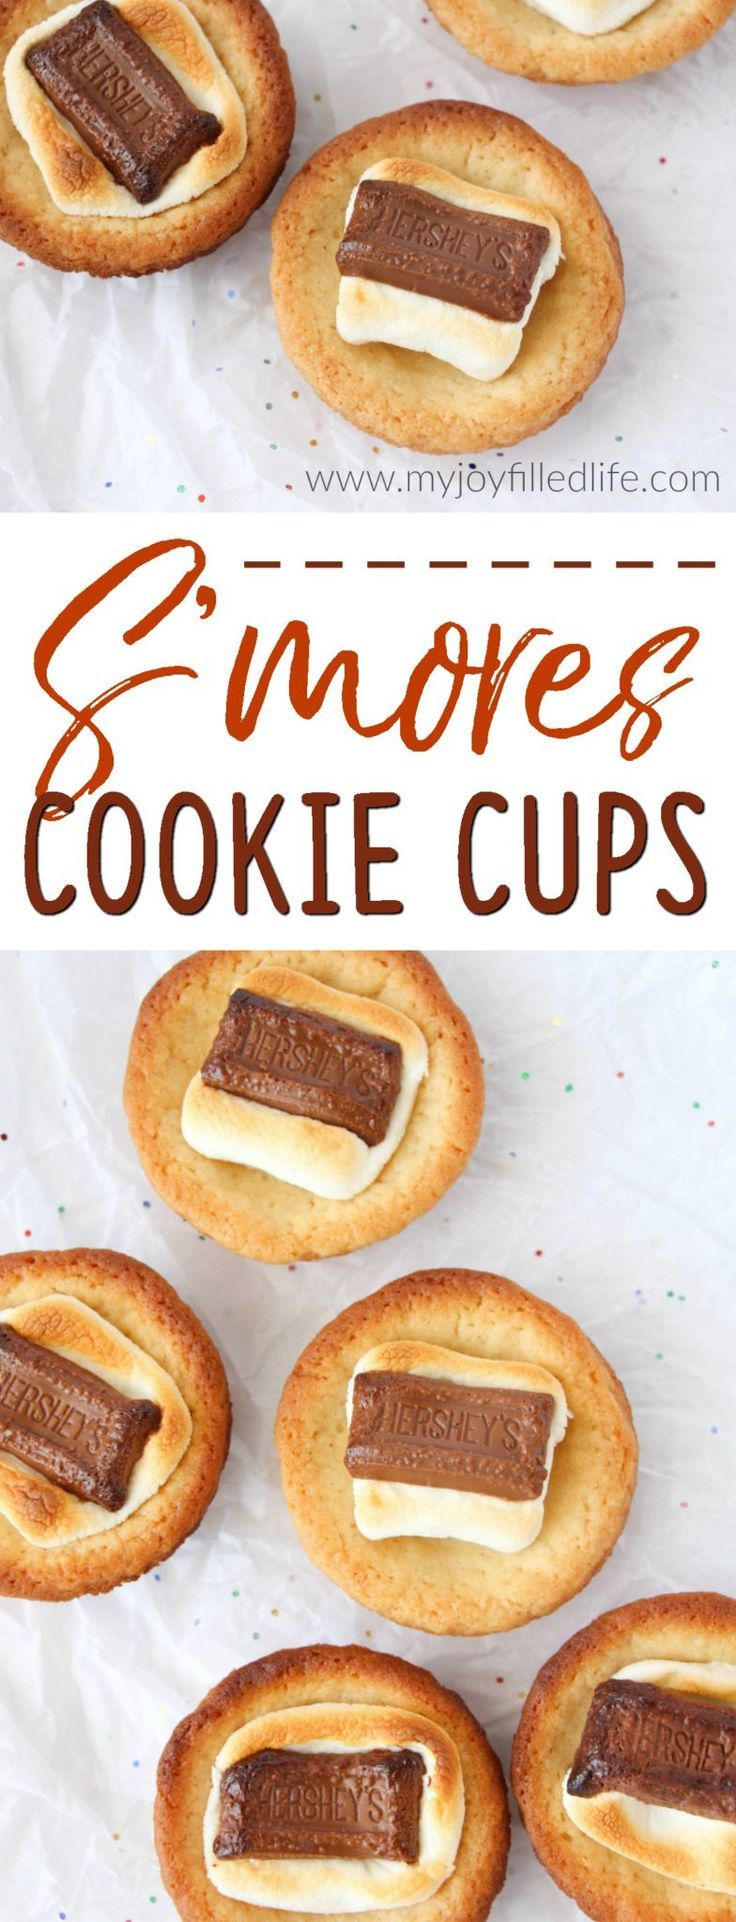 S'mores Cookie Cups are a great way to enjoy the taste of your favorite campfire treat, but without the campfire. #smores #sweettreats #cookies